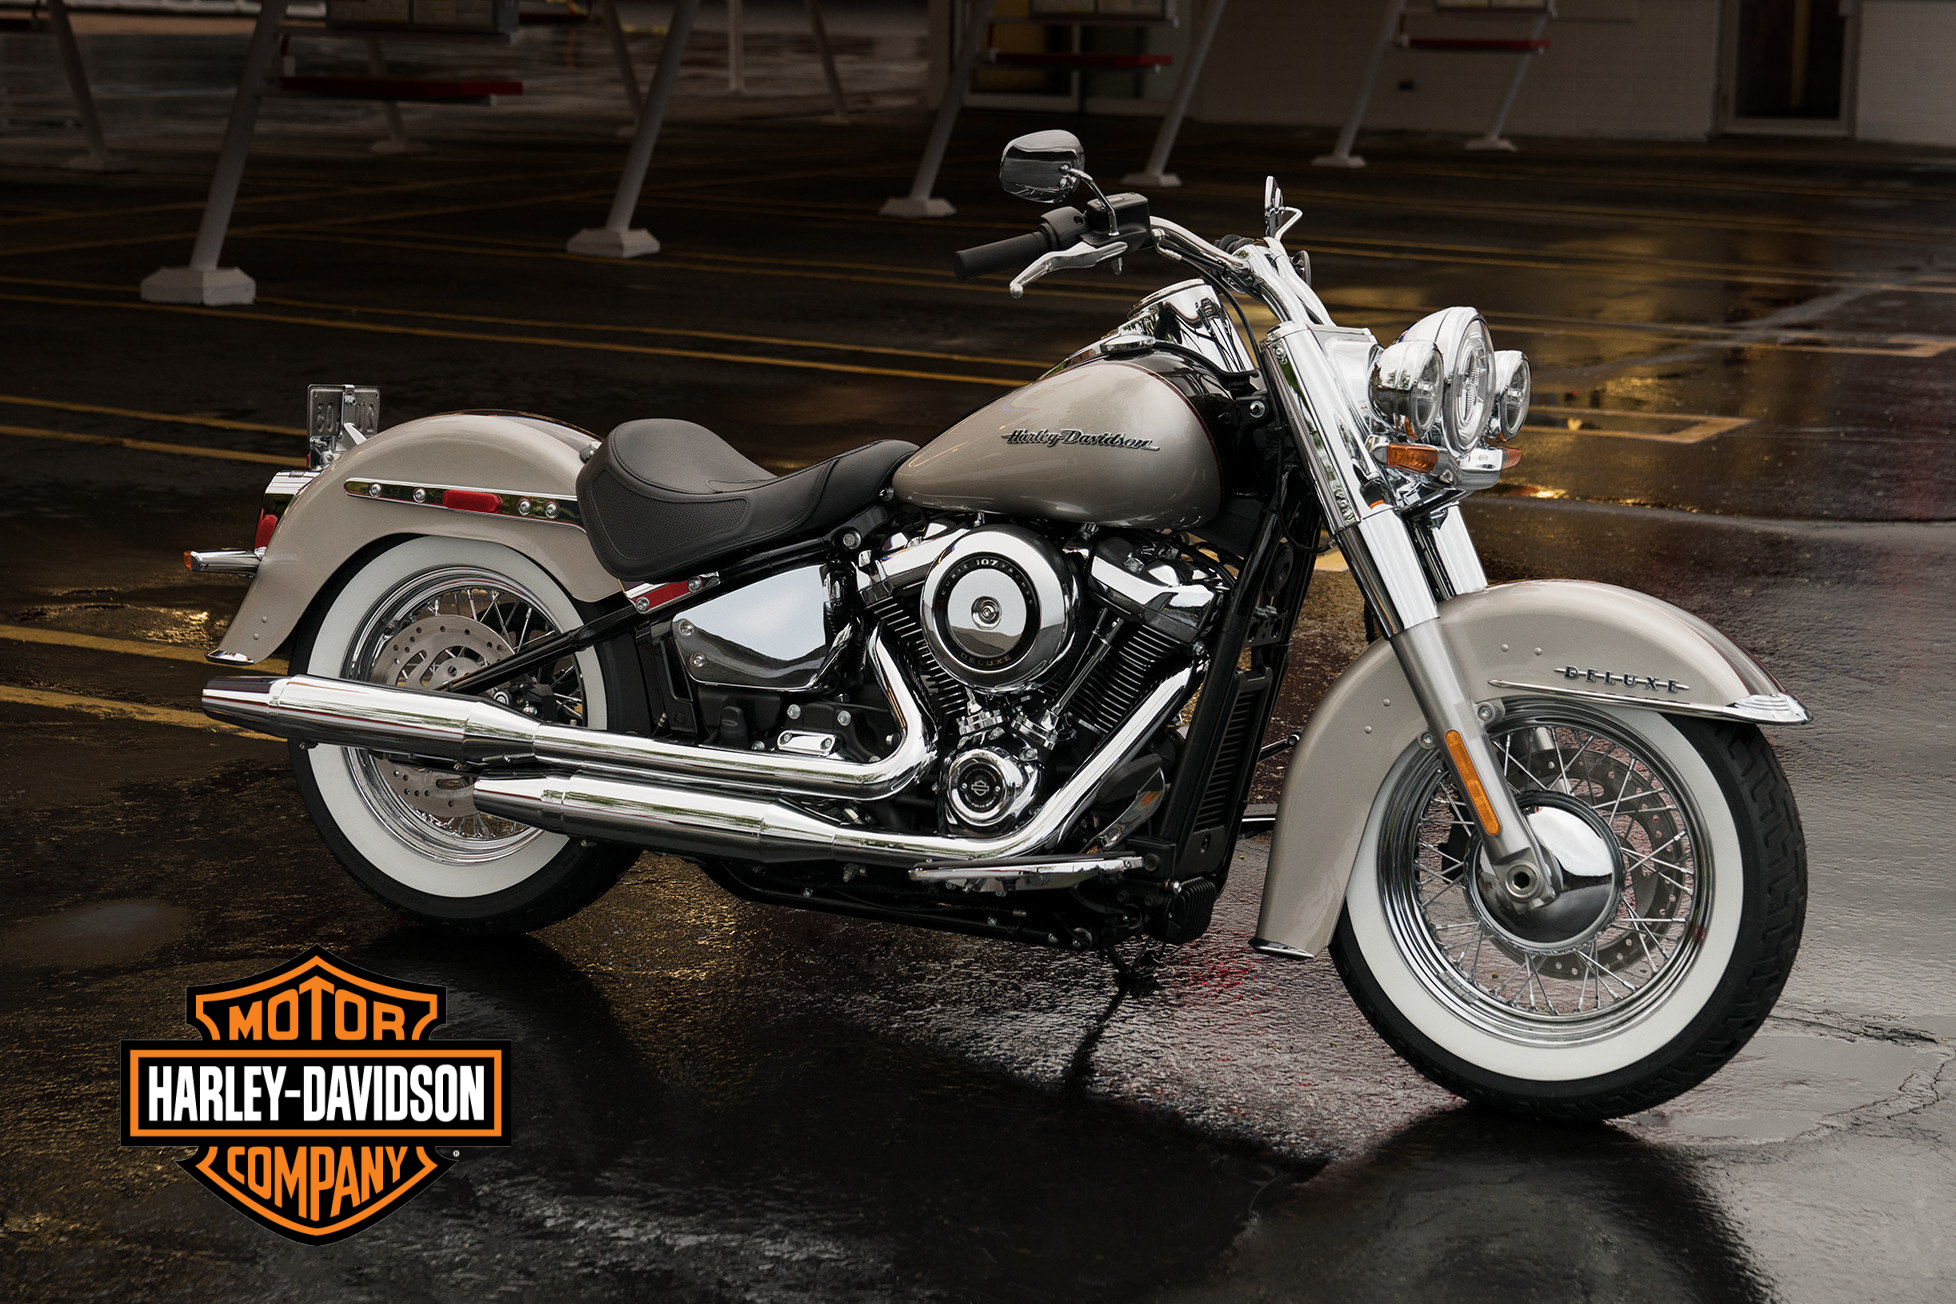 Harley Softail 2018 Harley Davidson Softail Deluxe Top Speed